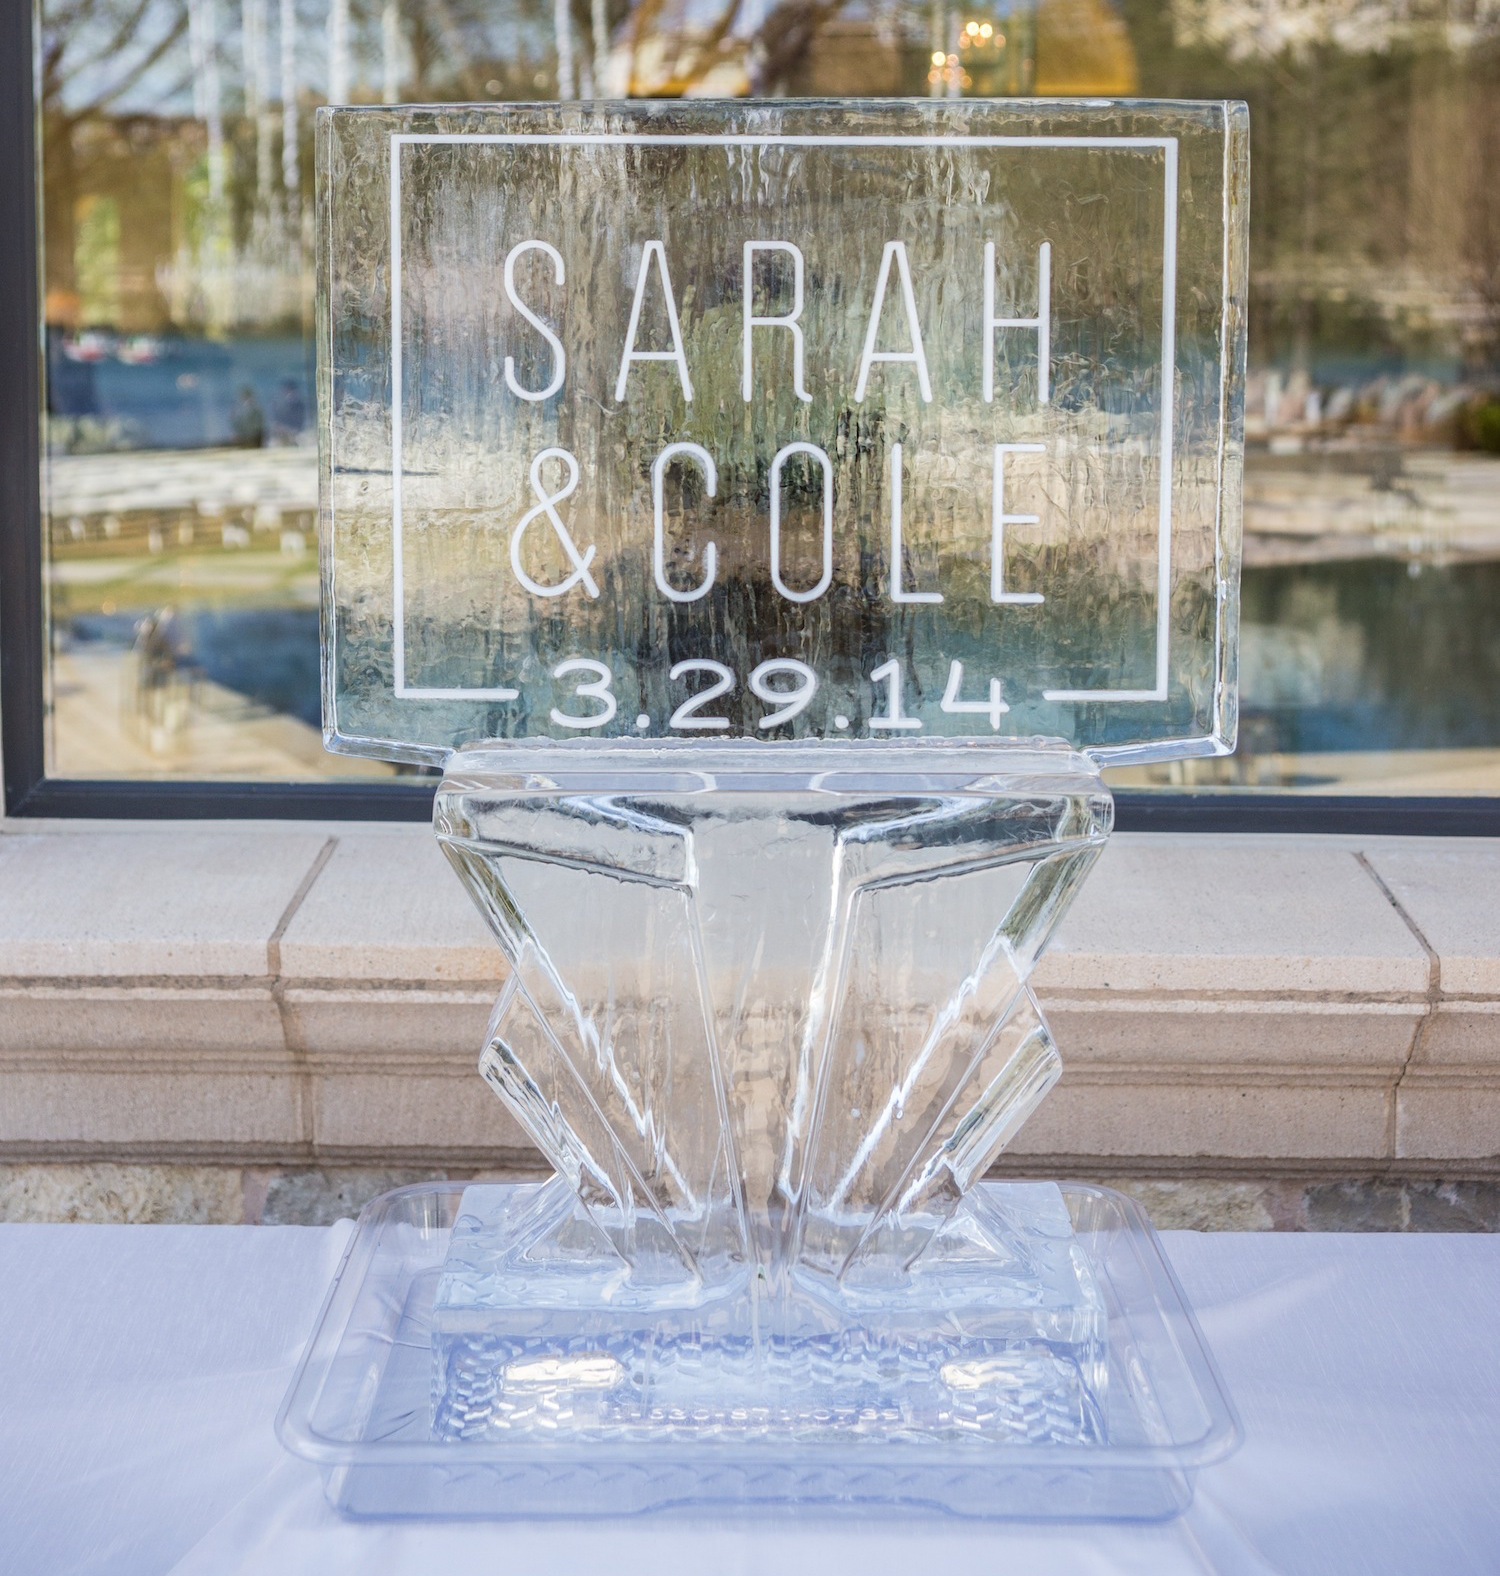 Ice sculpture at wedding with bride groom names and wedding date